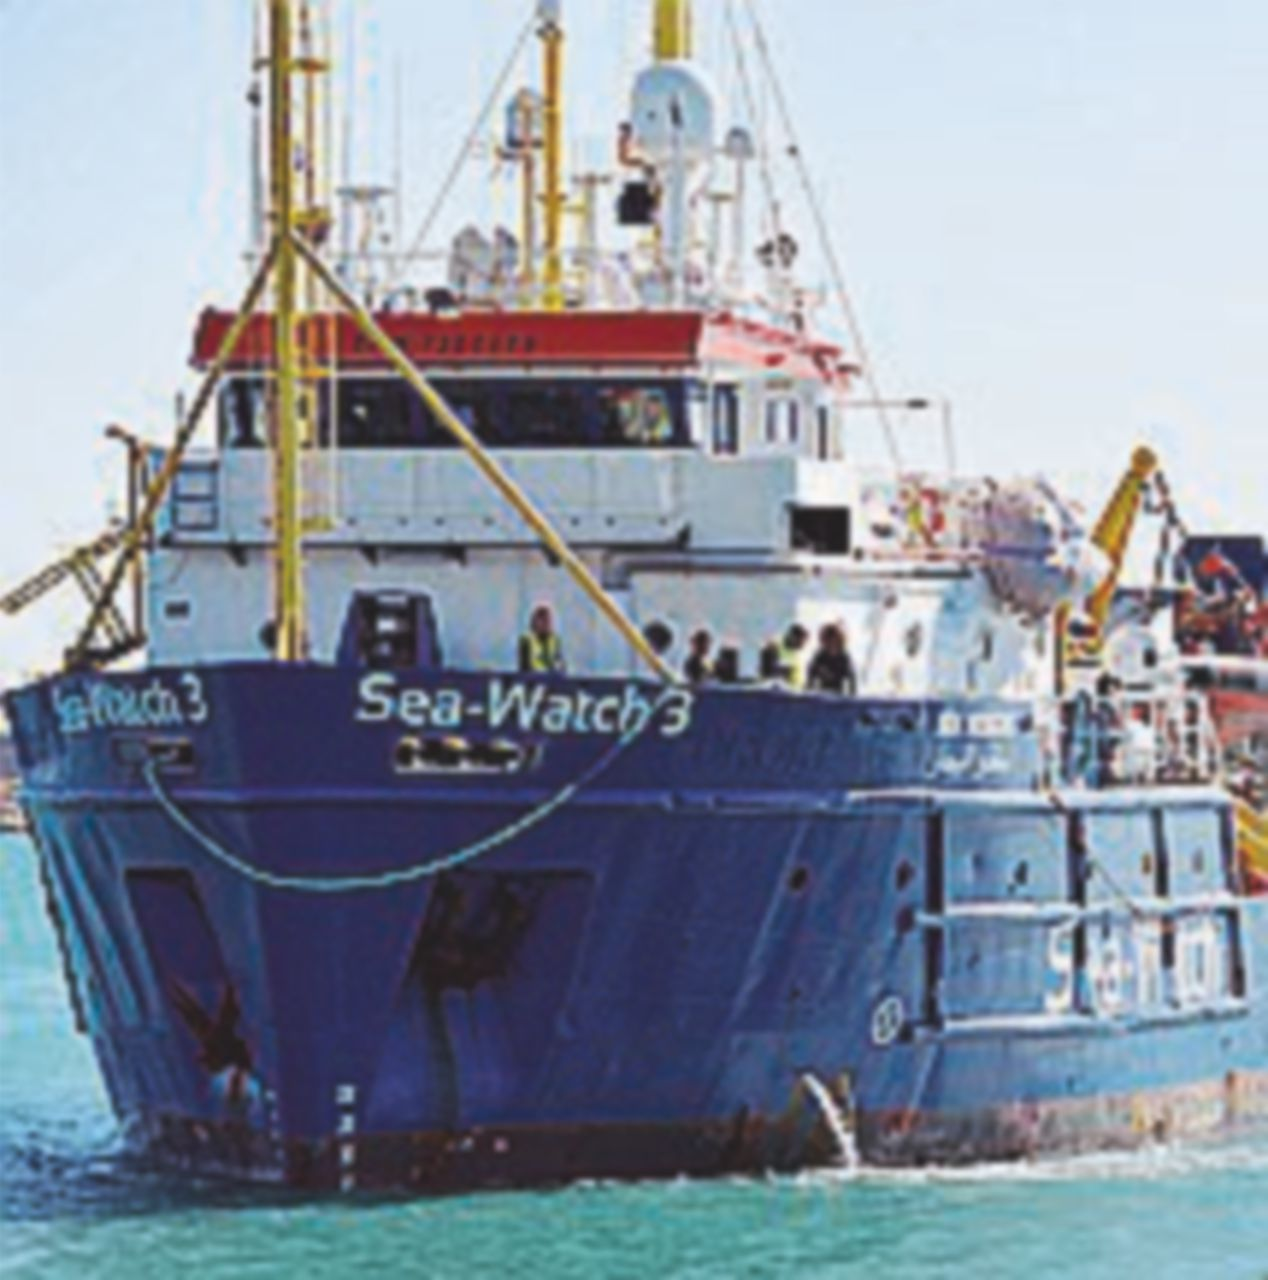 Ong, archiviate le accuse a Proactiva e Sea Watch